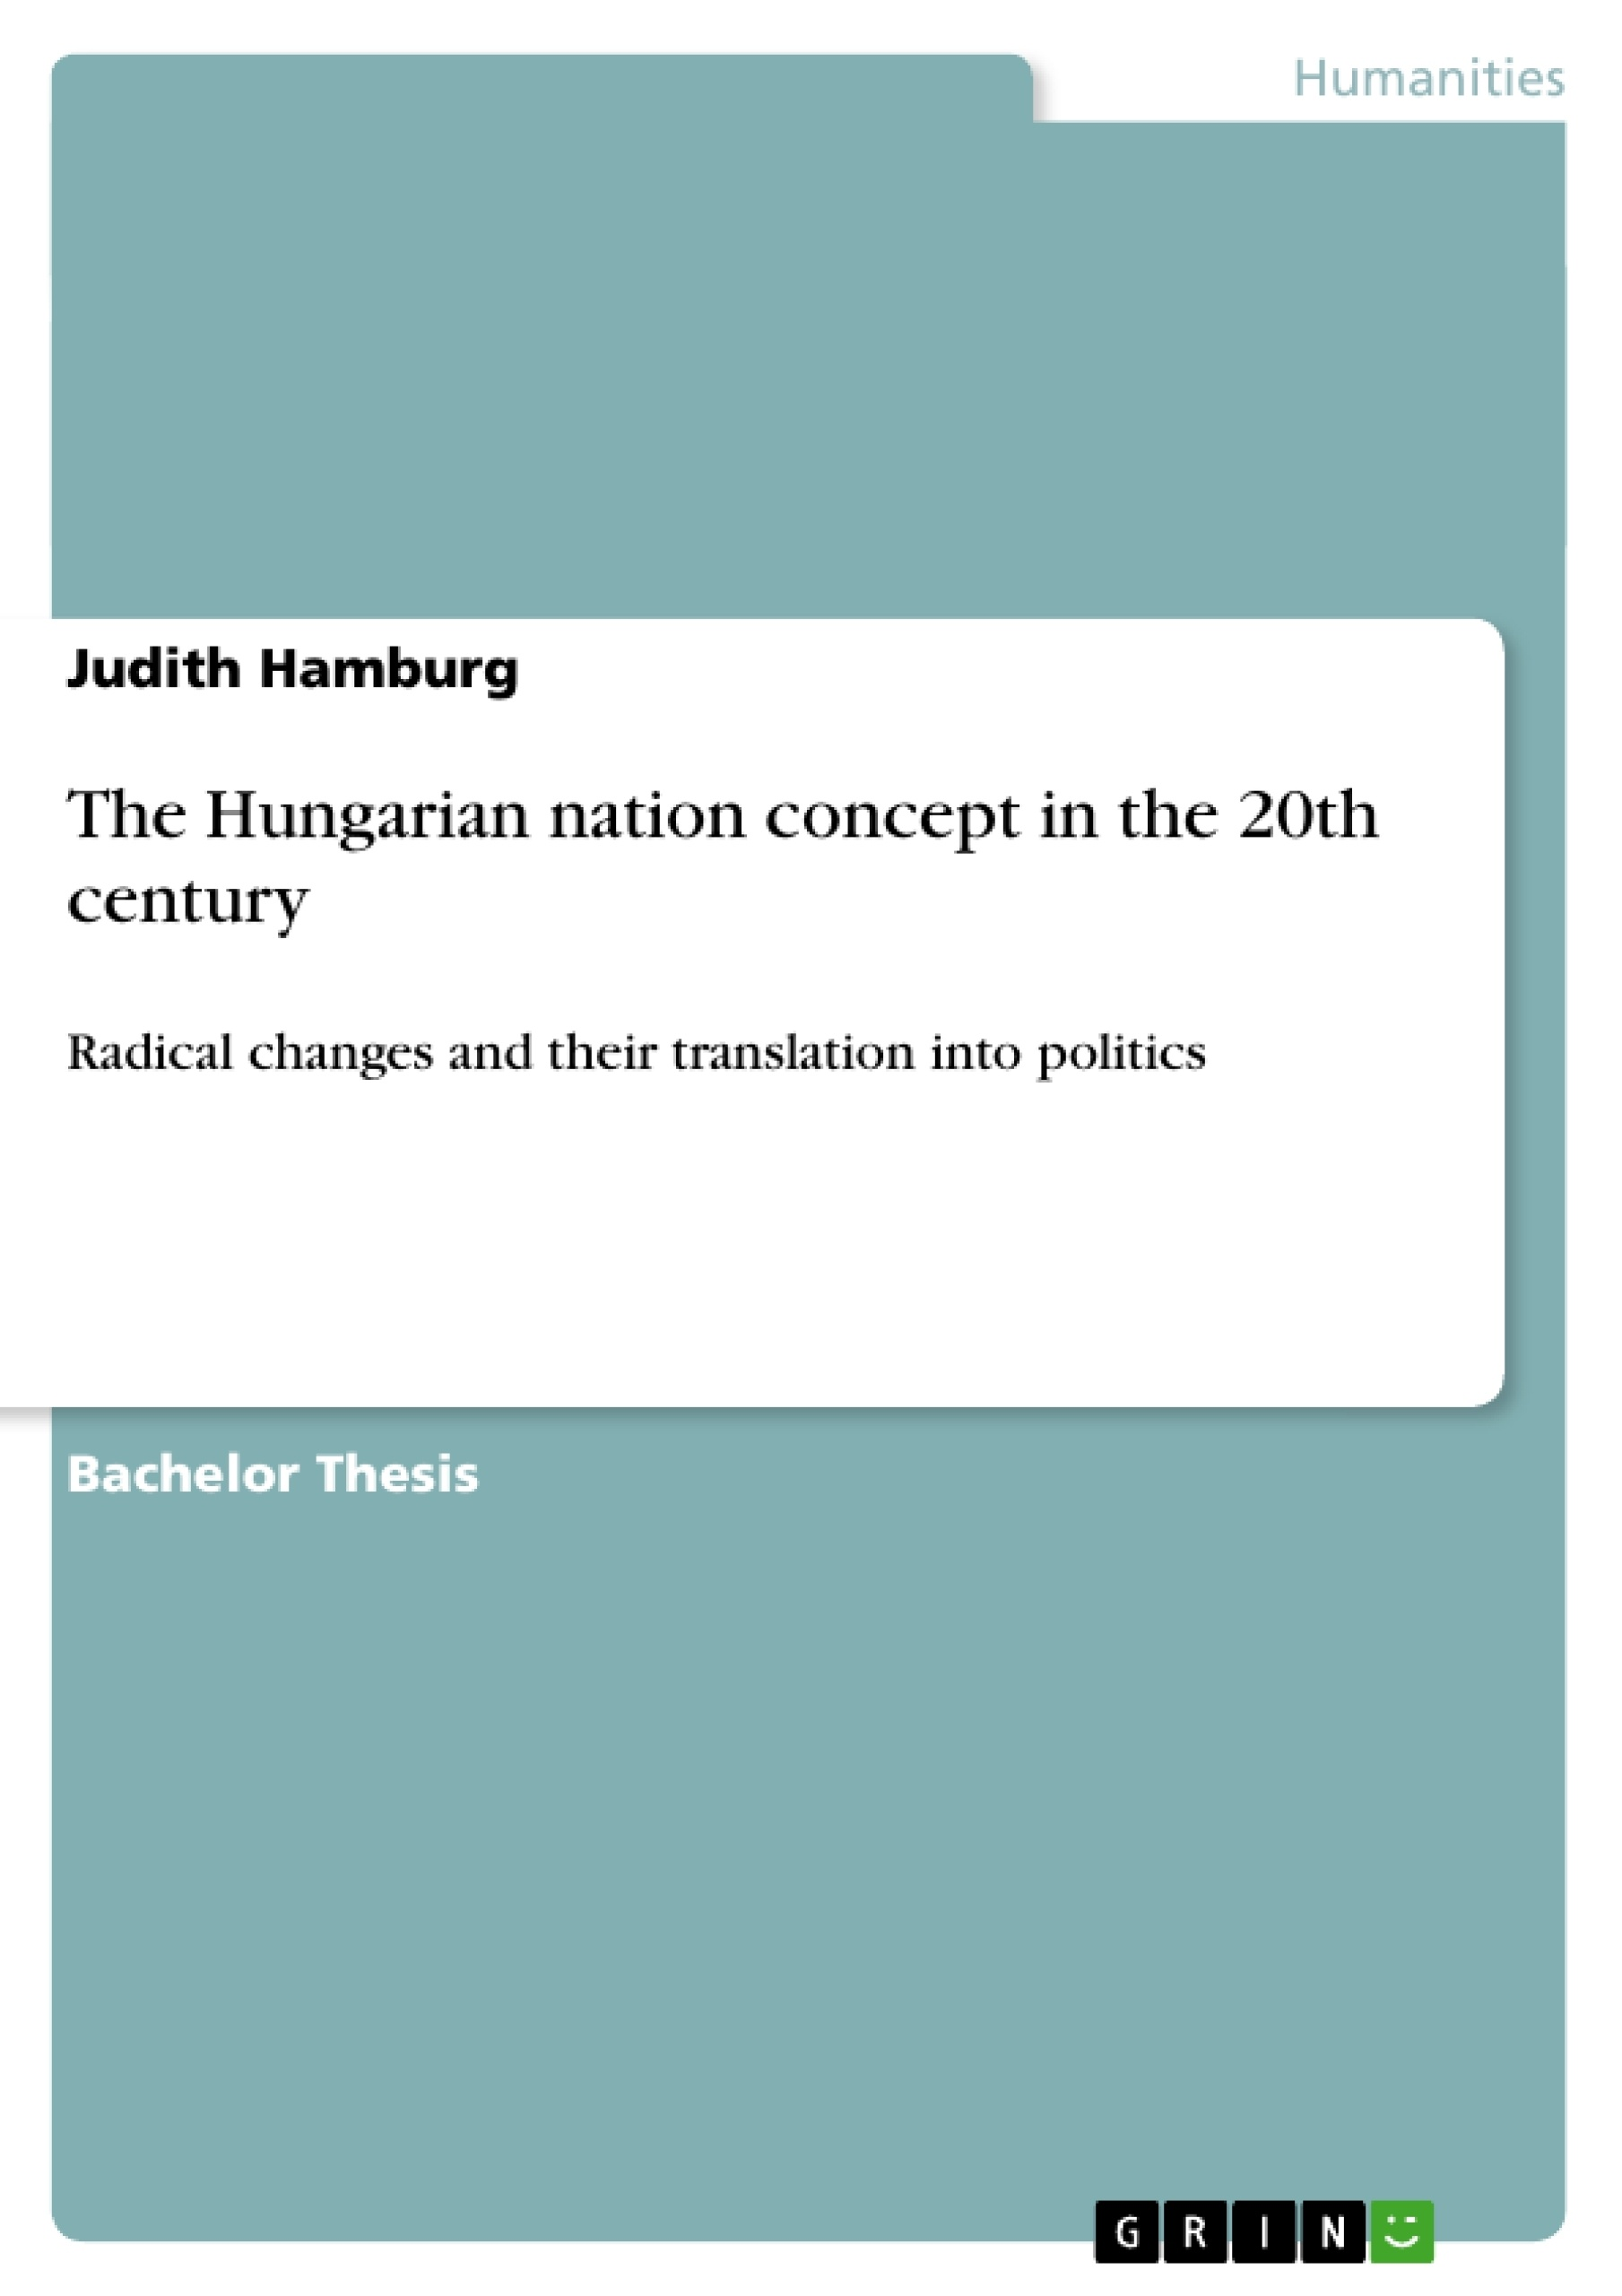 Title: The Hungarian nation concept in the 20th century